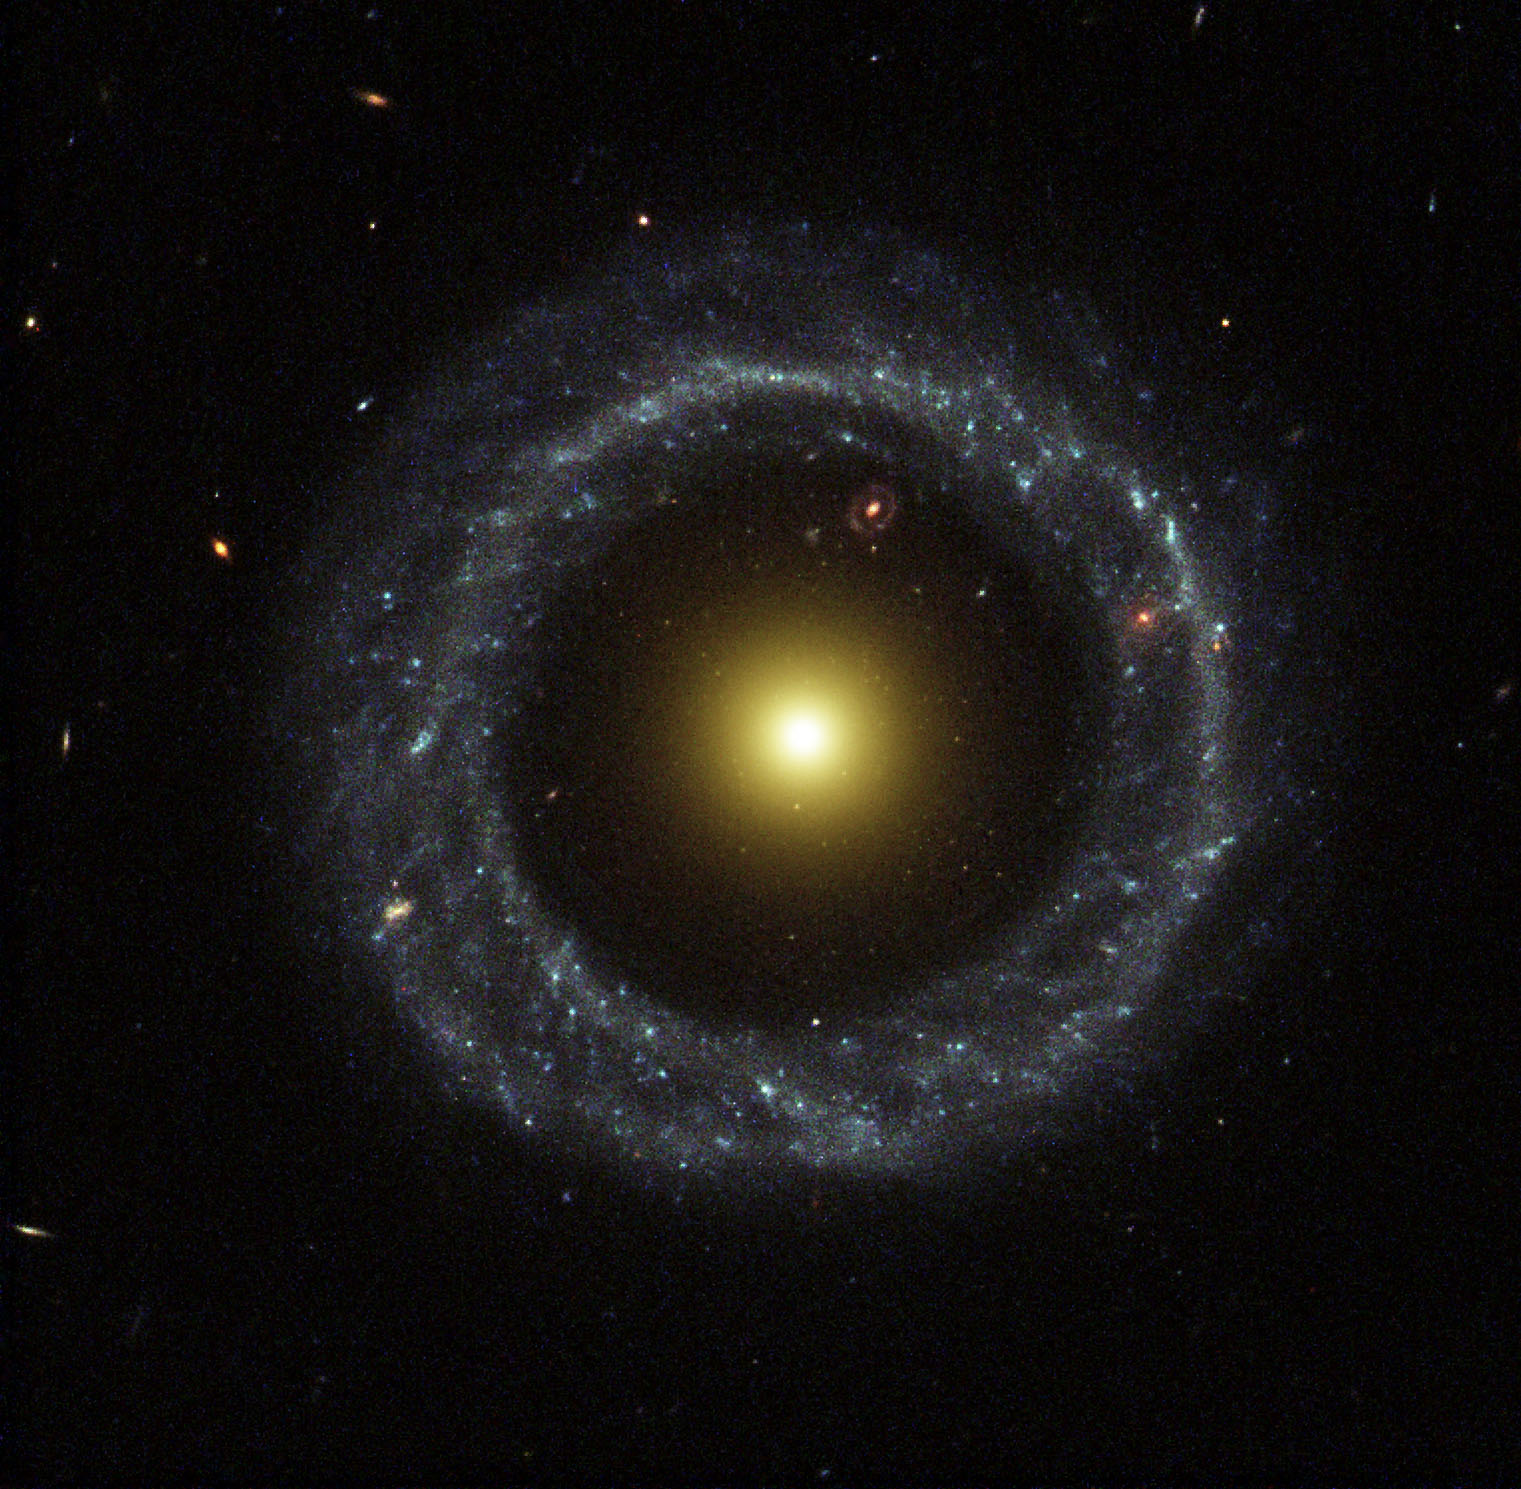 Hoag's Object, a ring galaxy